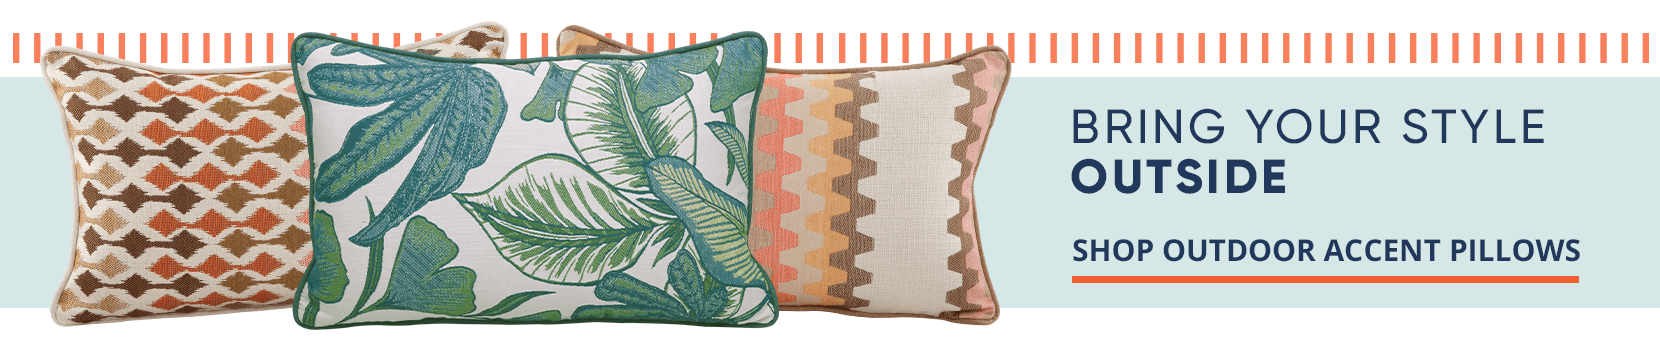 bring your style outside. shop outdoor accent pillows